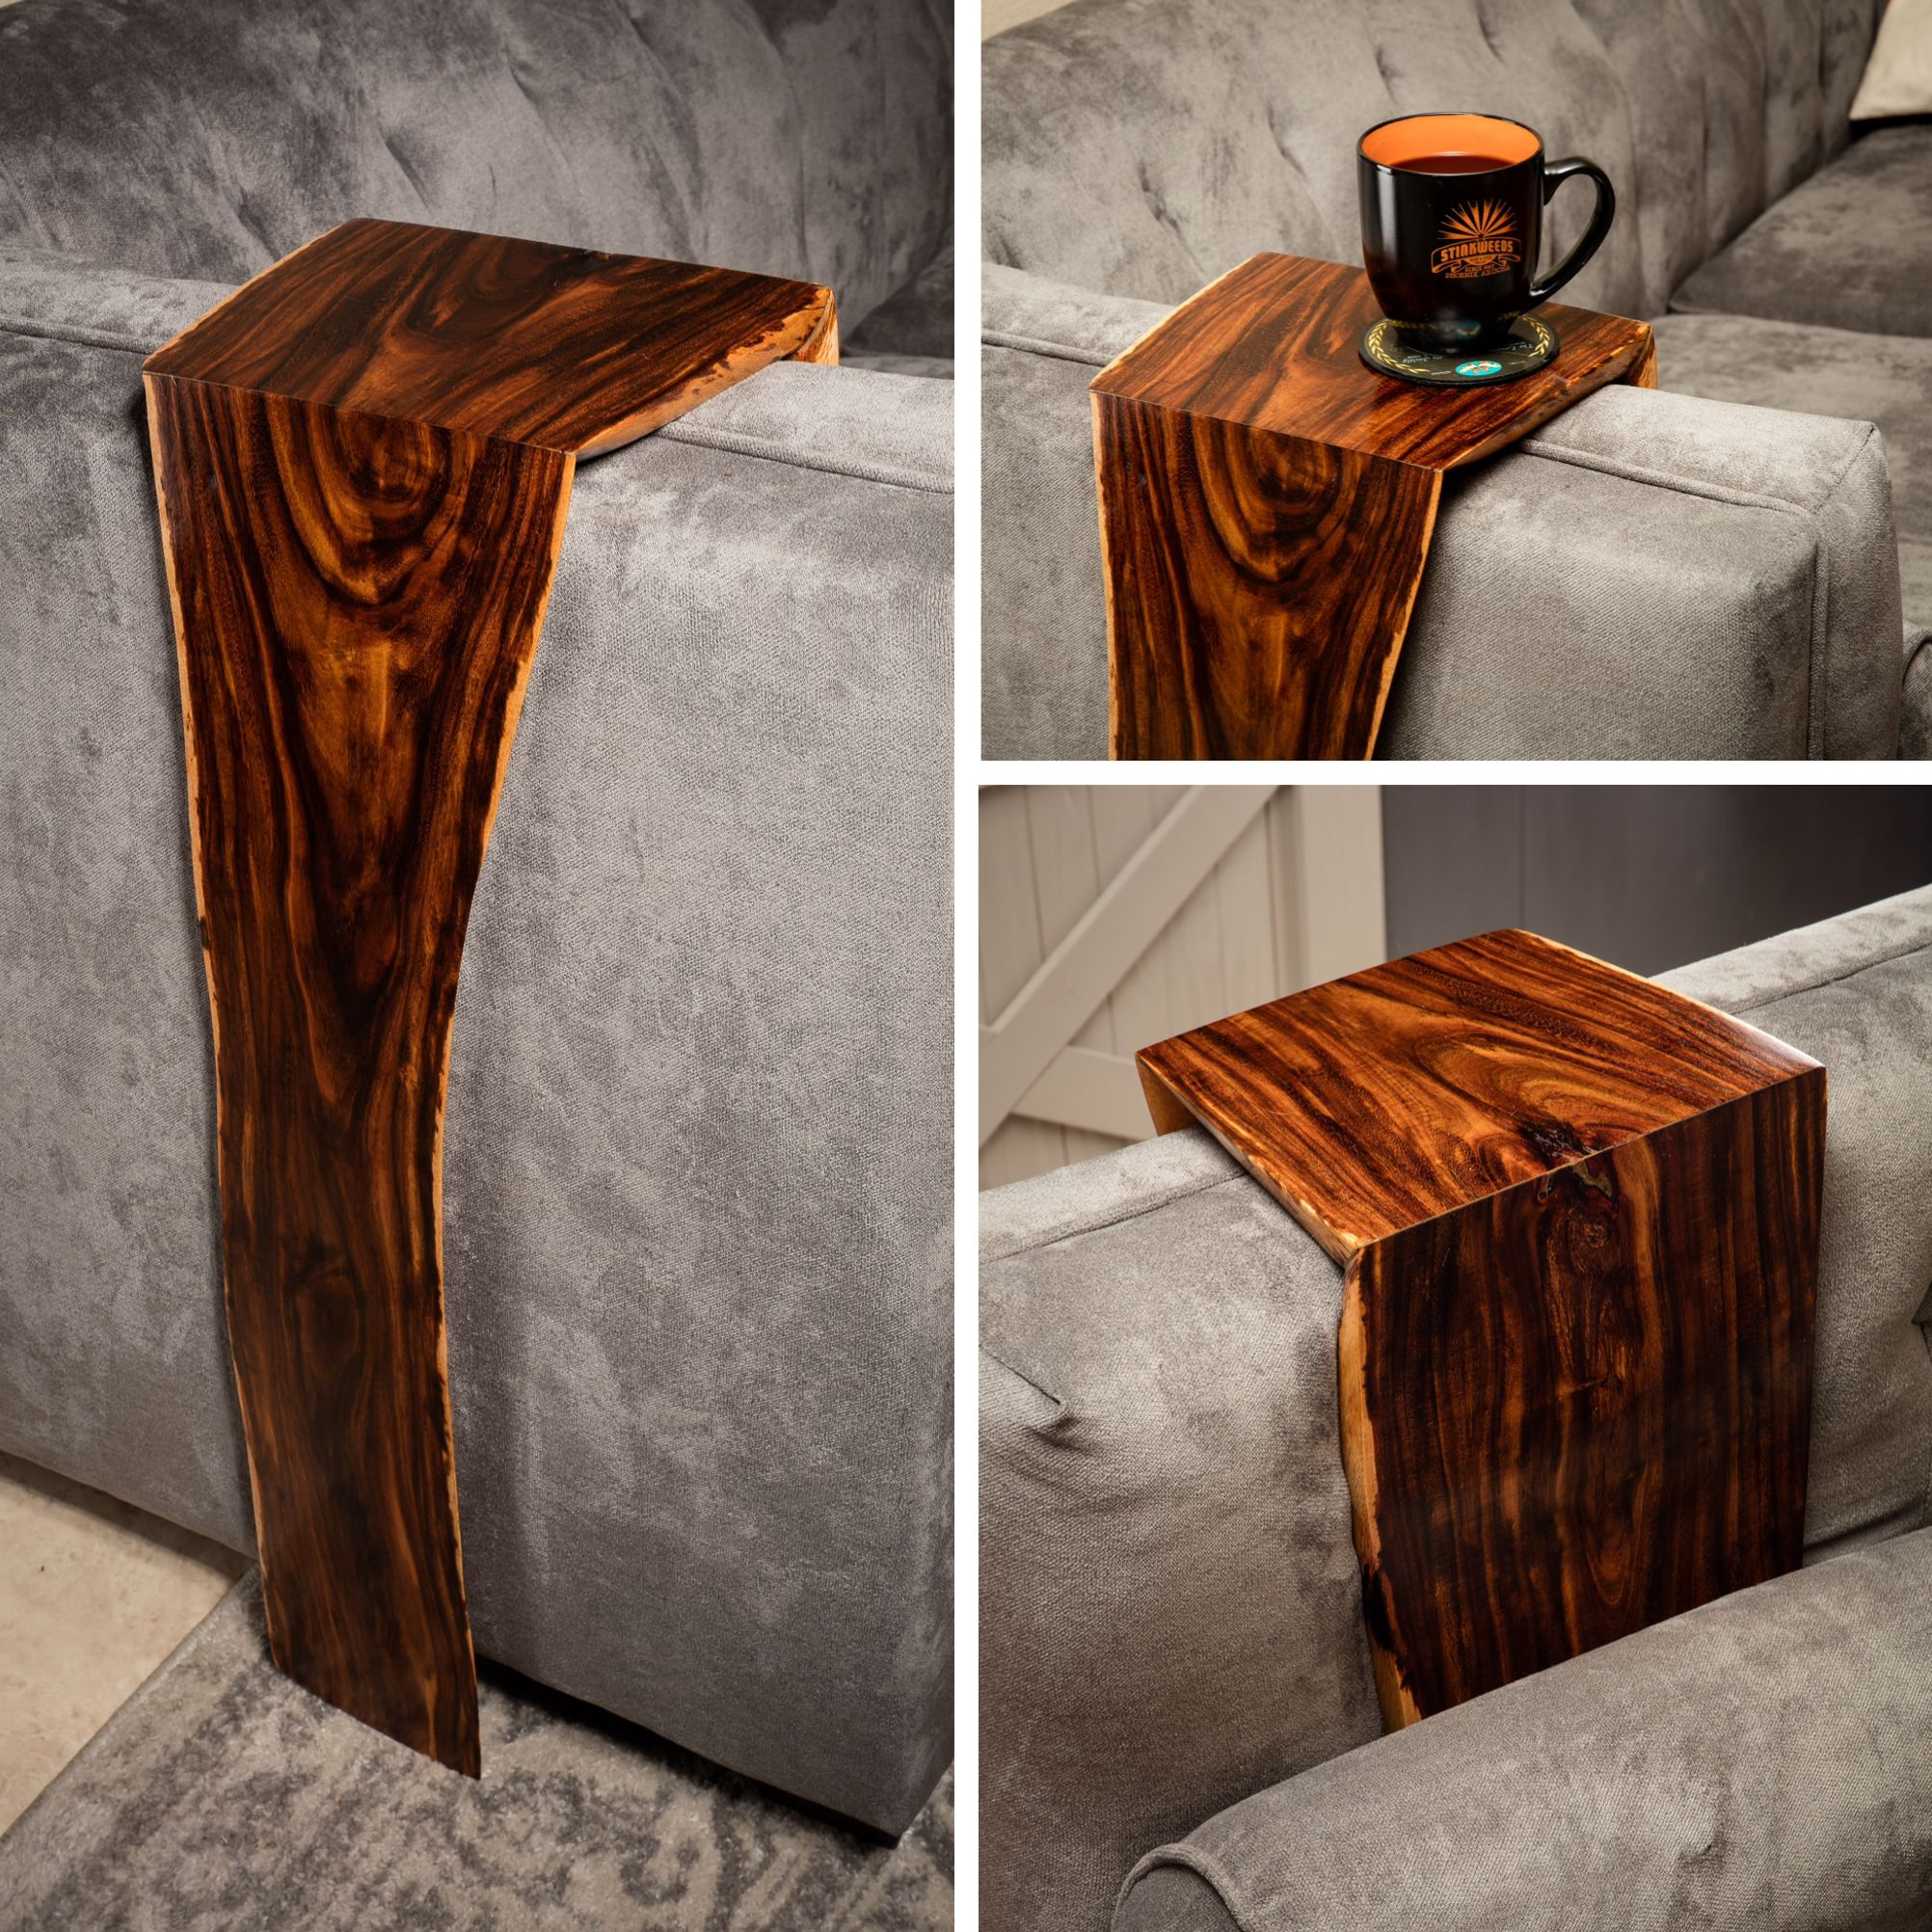 I Just Recently Finished This Piece Folded Wood Couch Wrap Table Made From Reclaimed Black Acacia With Miter J Wood Slab Table Raw Furniture Arm Rest Table